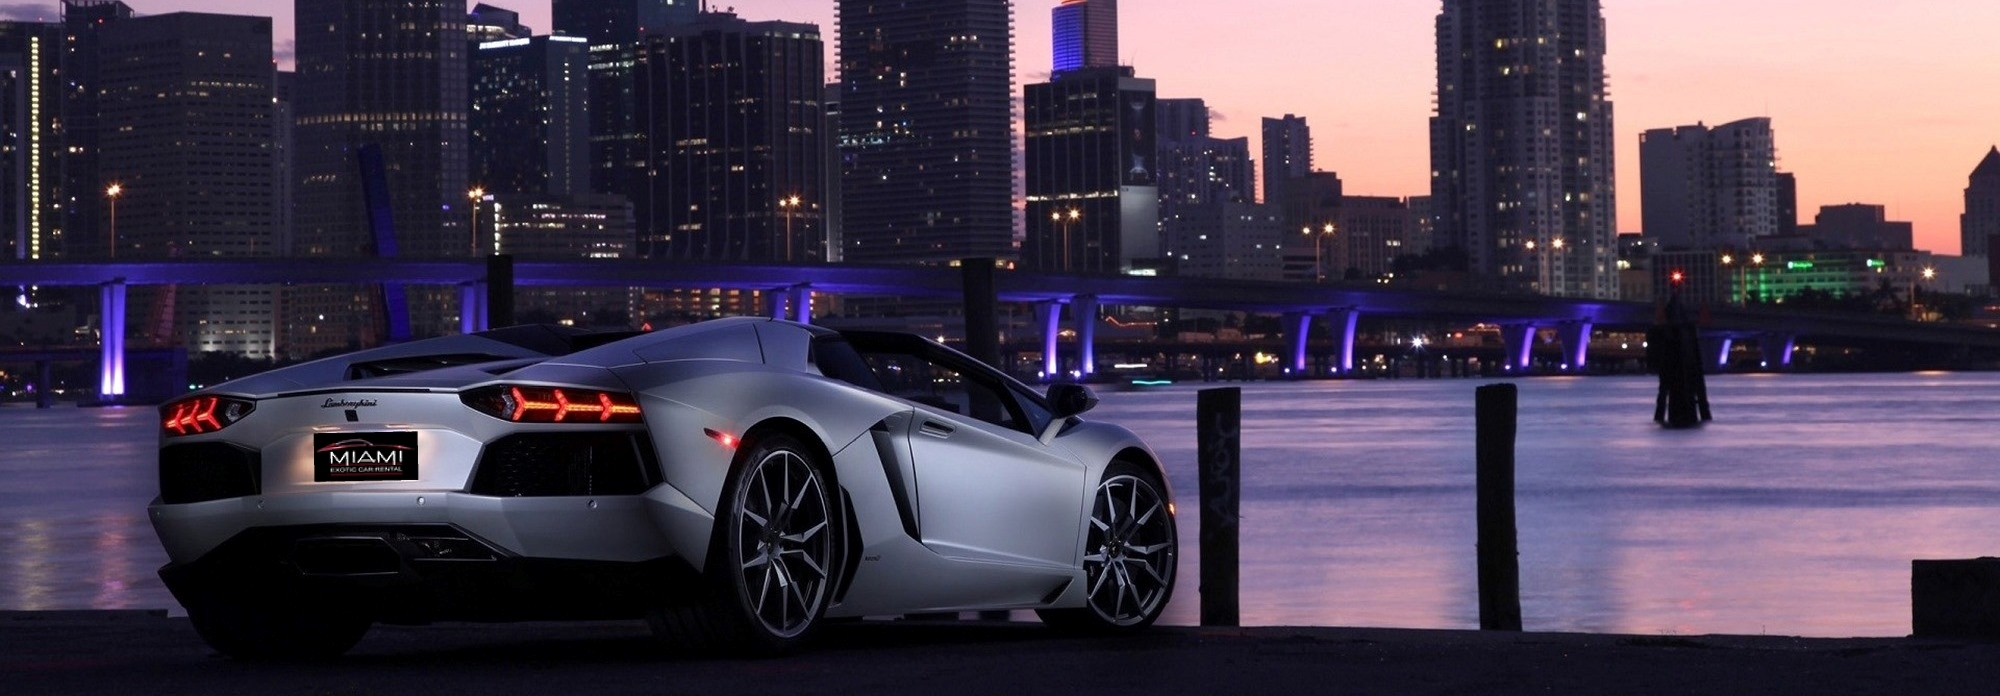 Luxury Exotic Car Rental Miami Finest Selection Service